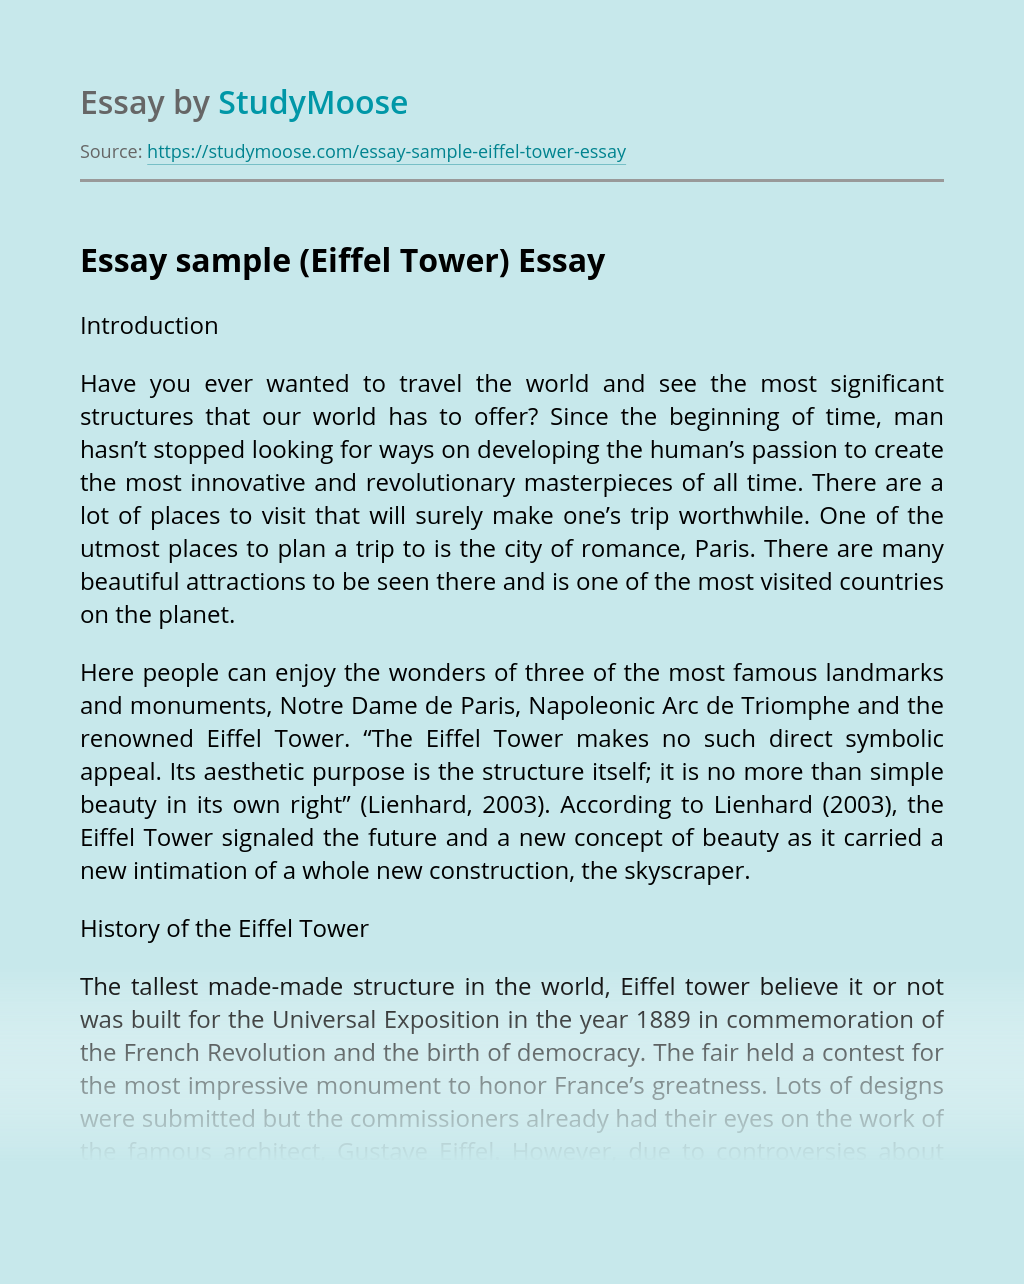 Essay sample (Eiffel Tower)